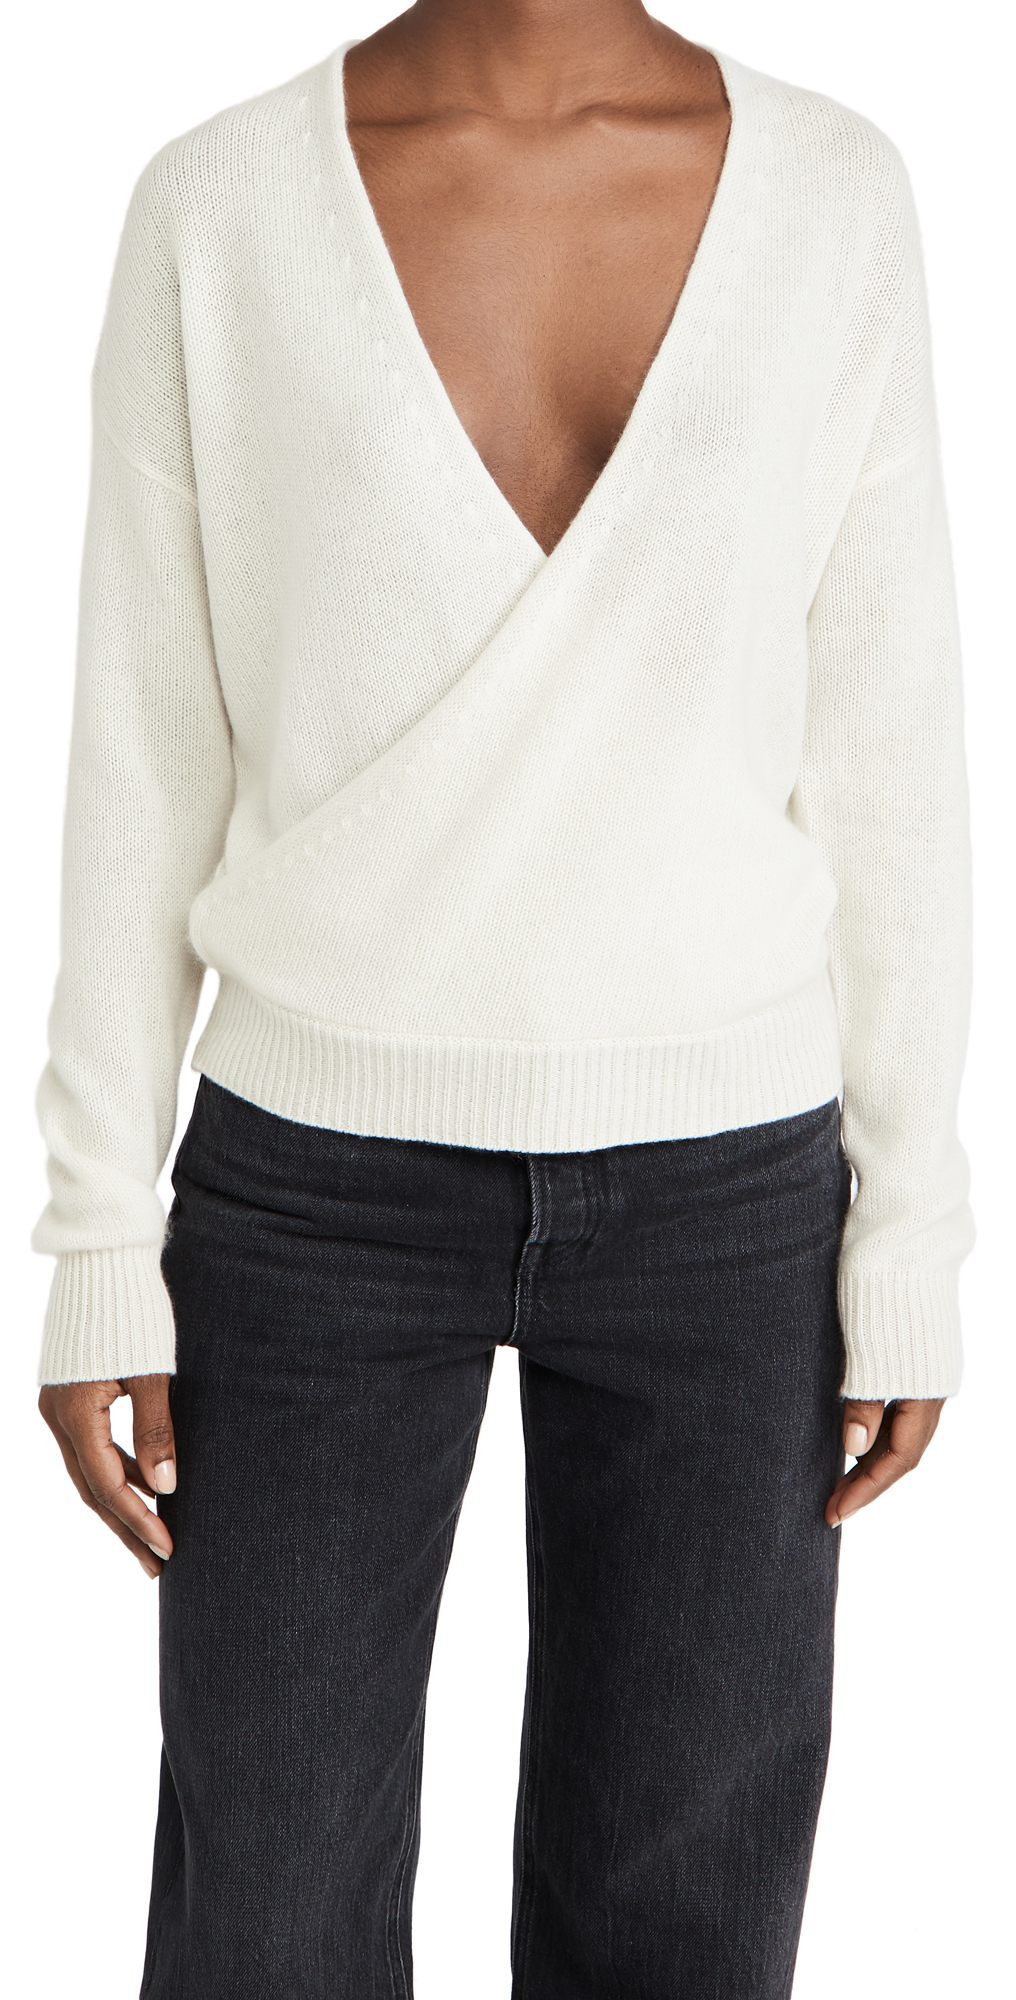 360 SWEATER Cassian Cashmere Sweater